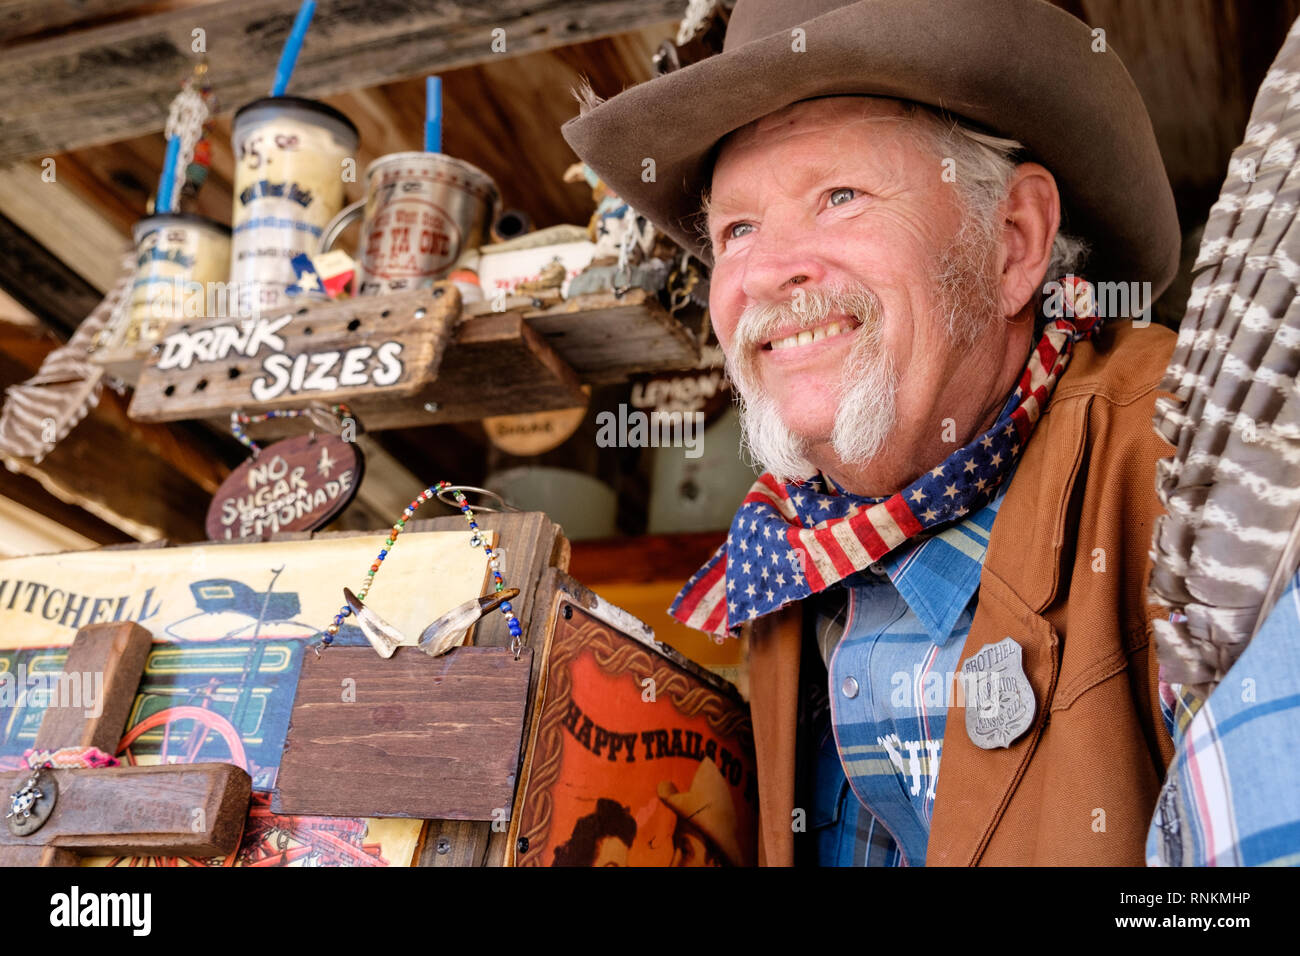 Smiling Texan Cowboy with cowboy hat, scarf & white horseshoe moustache at Wild West Soda market booth, Third Monday Trade Days Market. March 2018 - Stock Image